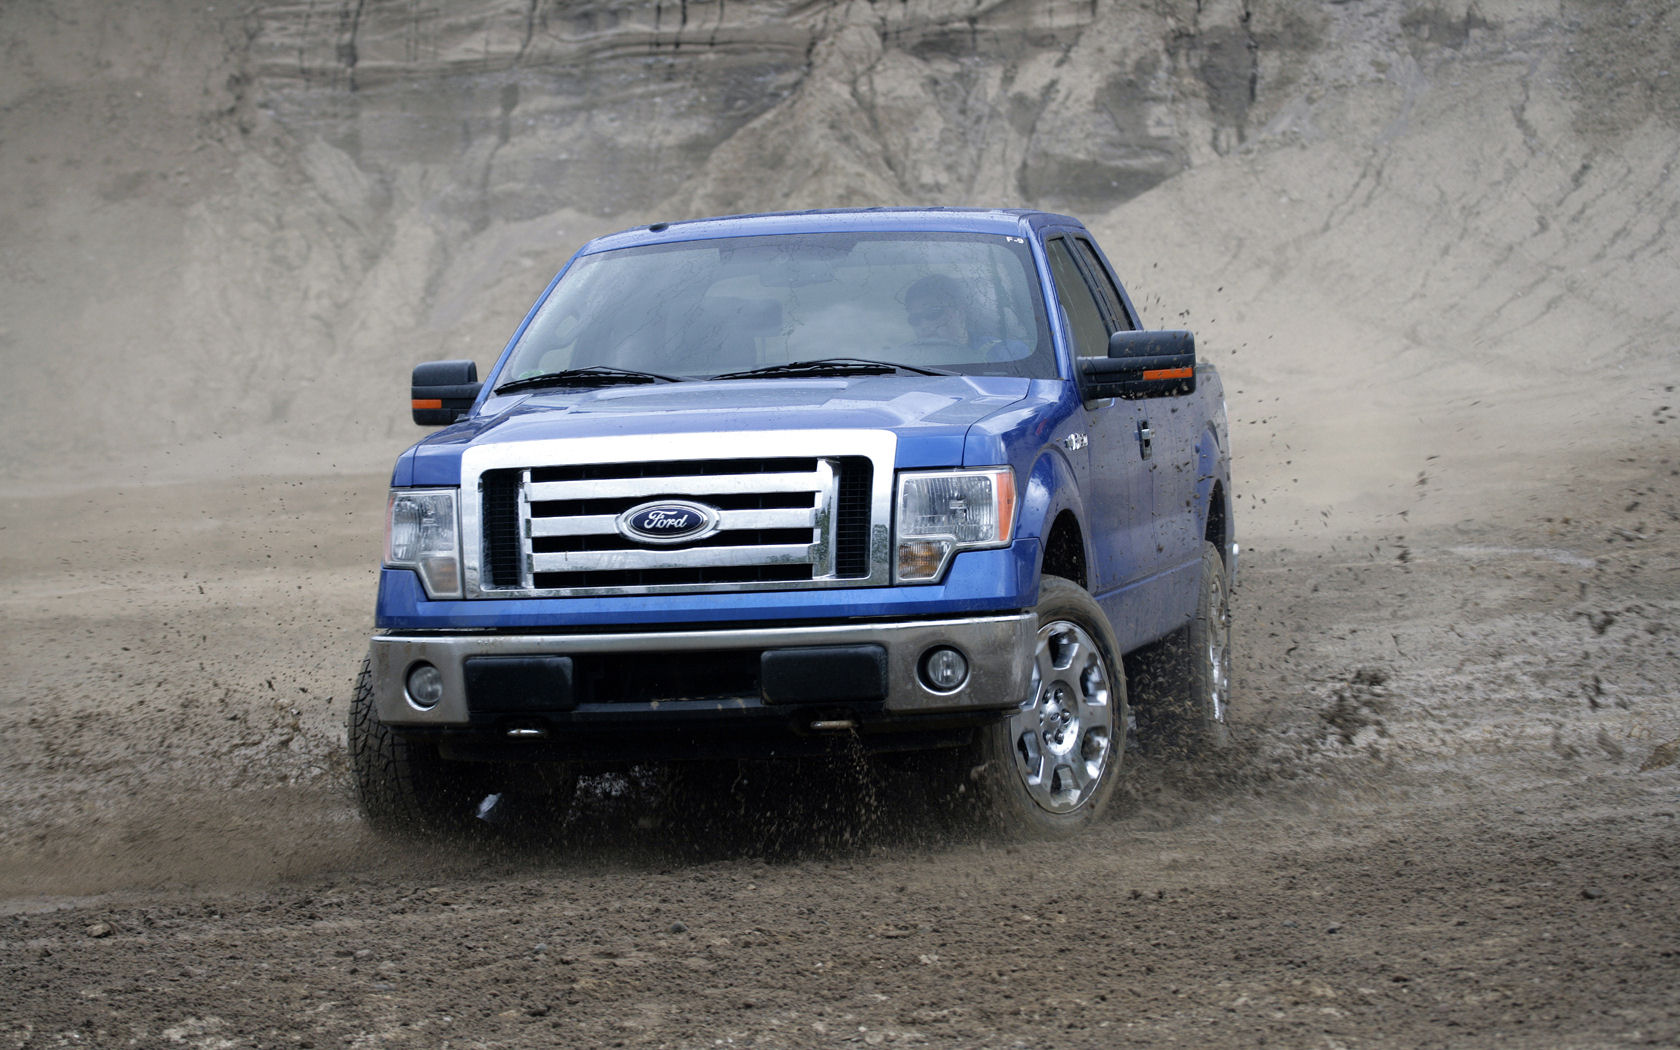 Wallpapers Cars Ford Truck Wallpaper 1680x1050